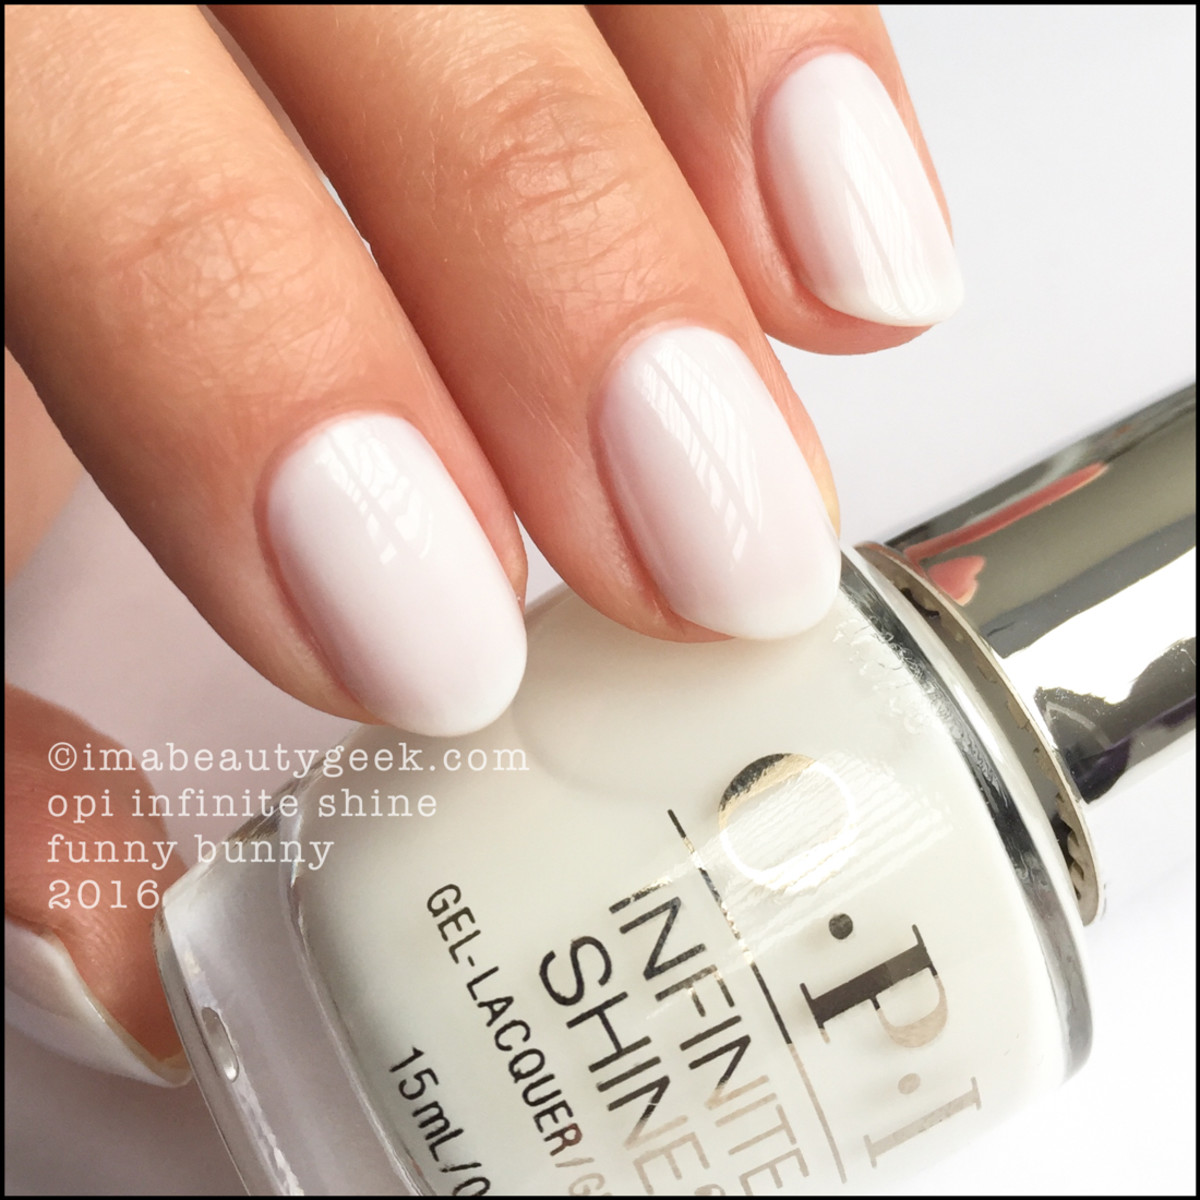 OPI Infinite Shine Funny Bunny_OPI Infinite Shine Iconic Collection 2016